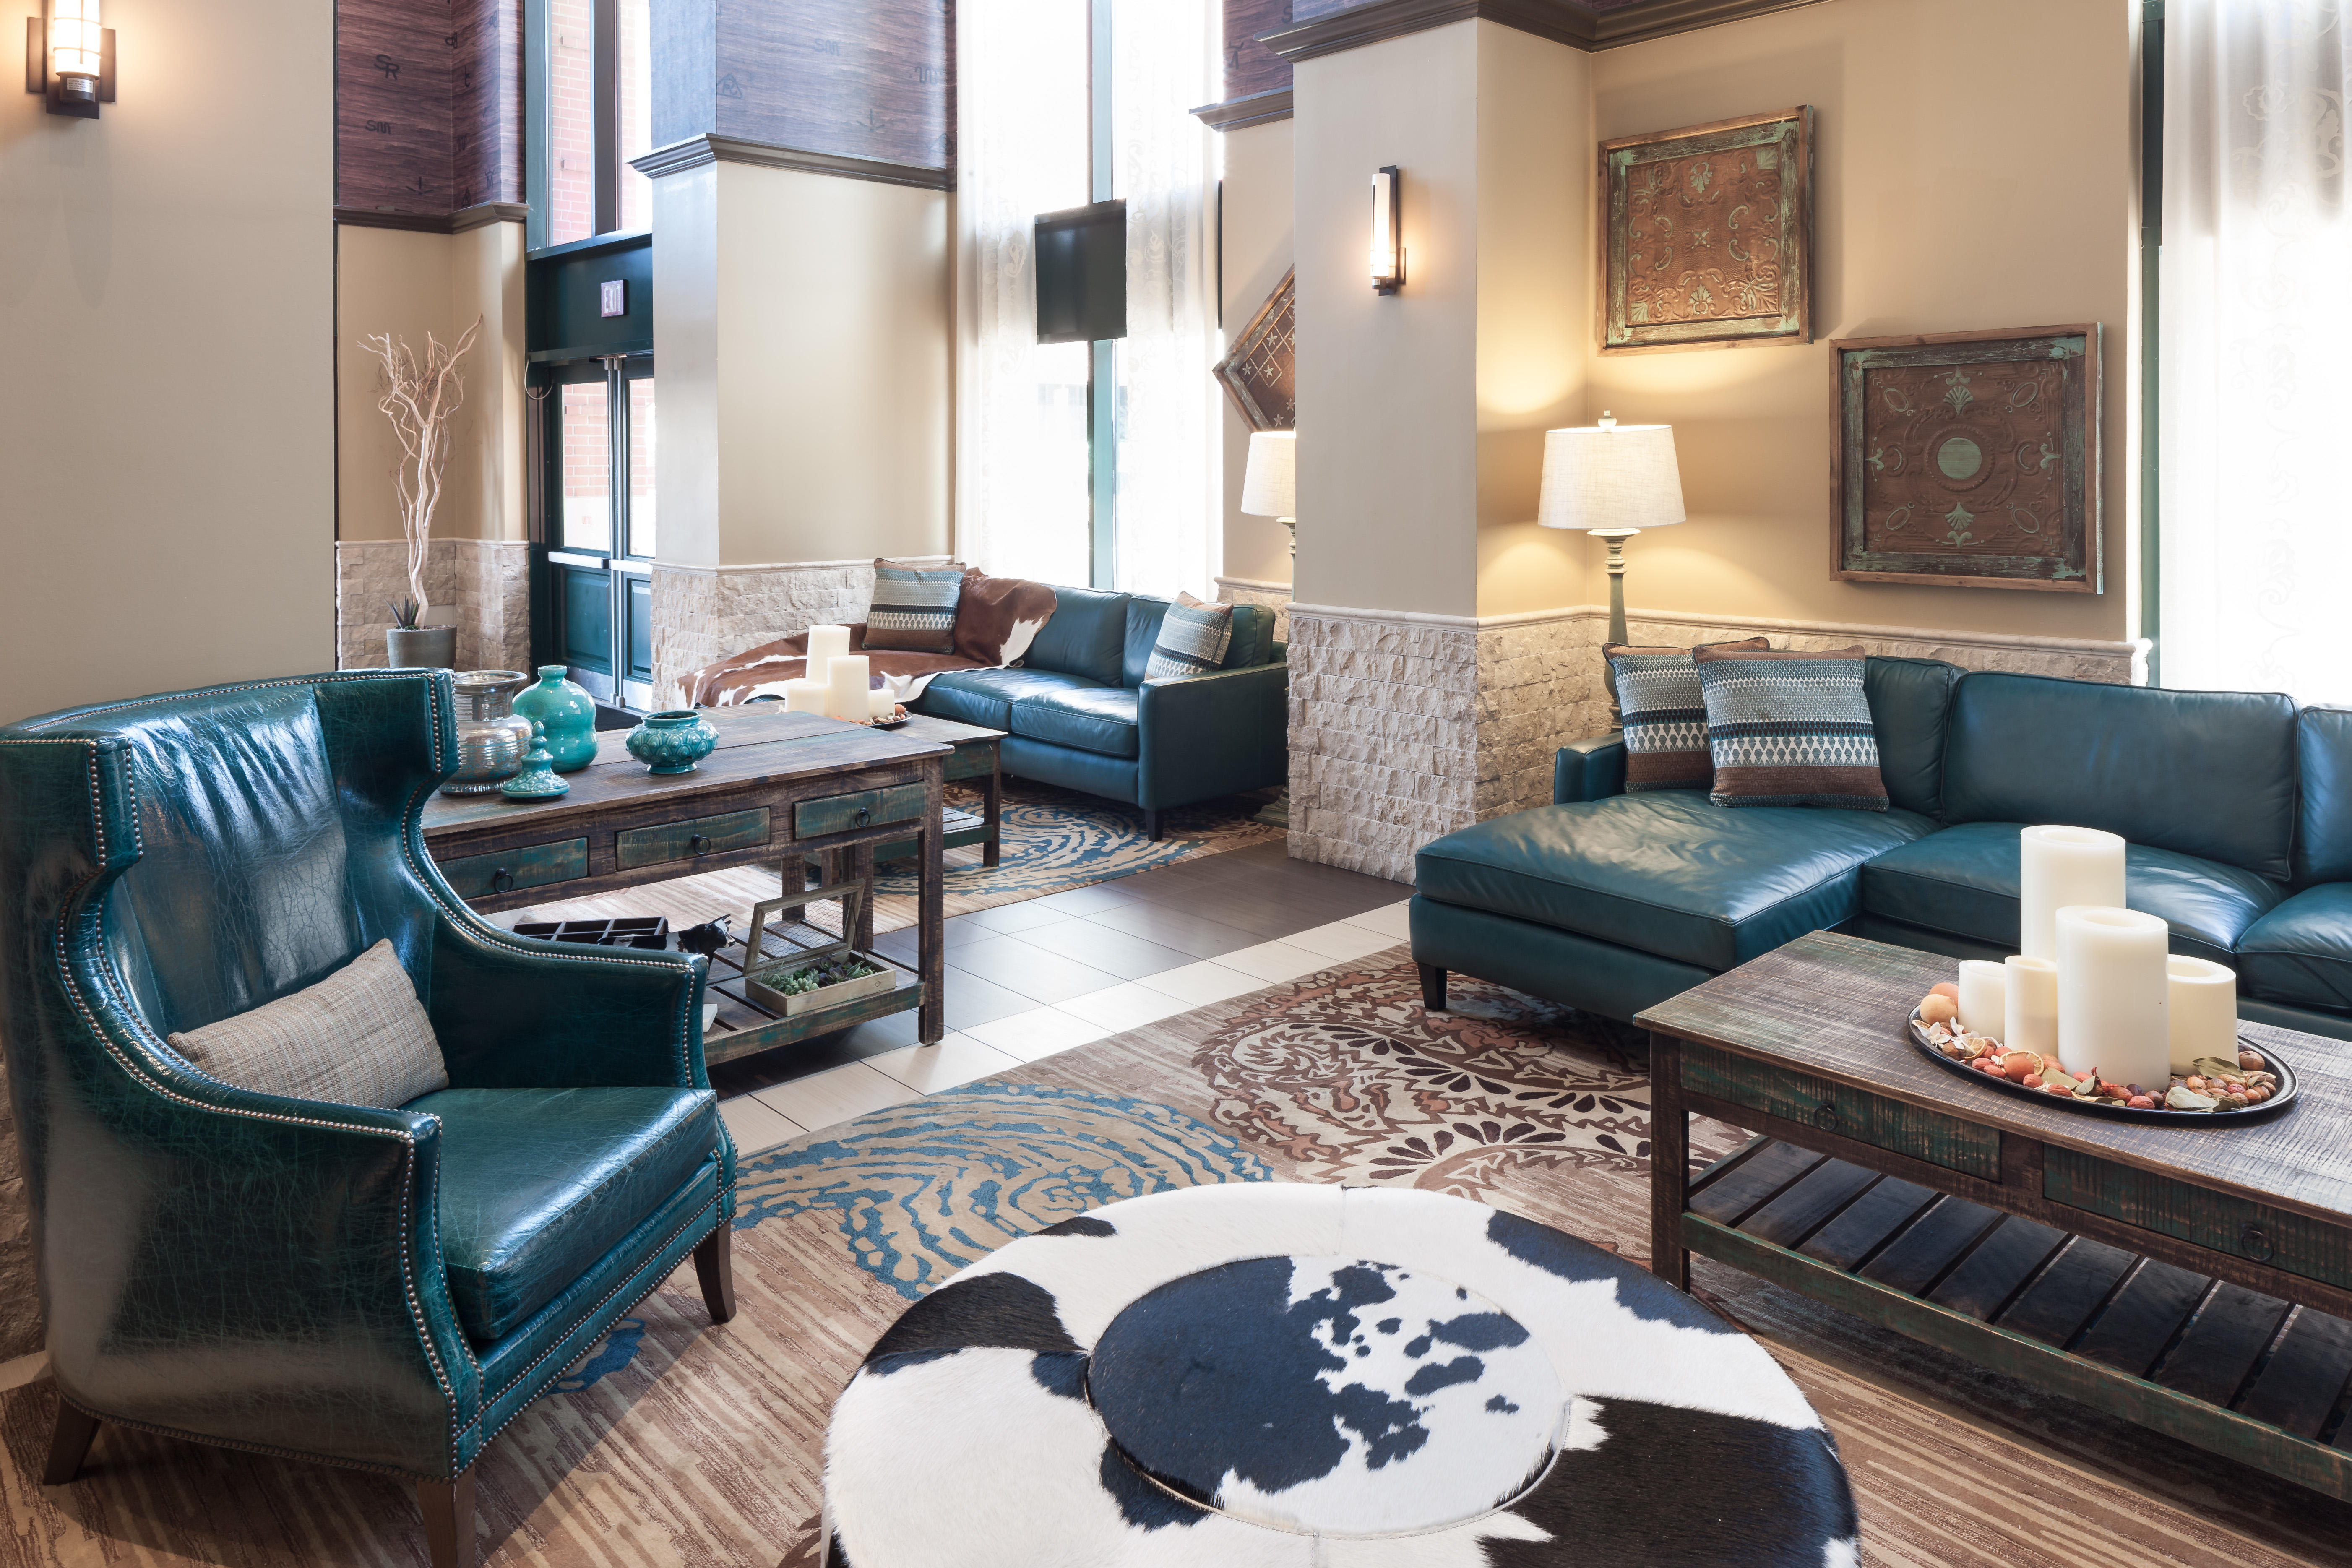 SpringHill Suites by Marriott Dallas Downtown/West End image 1